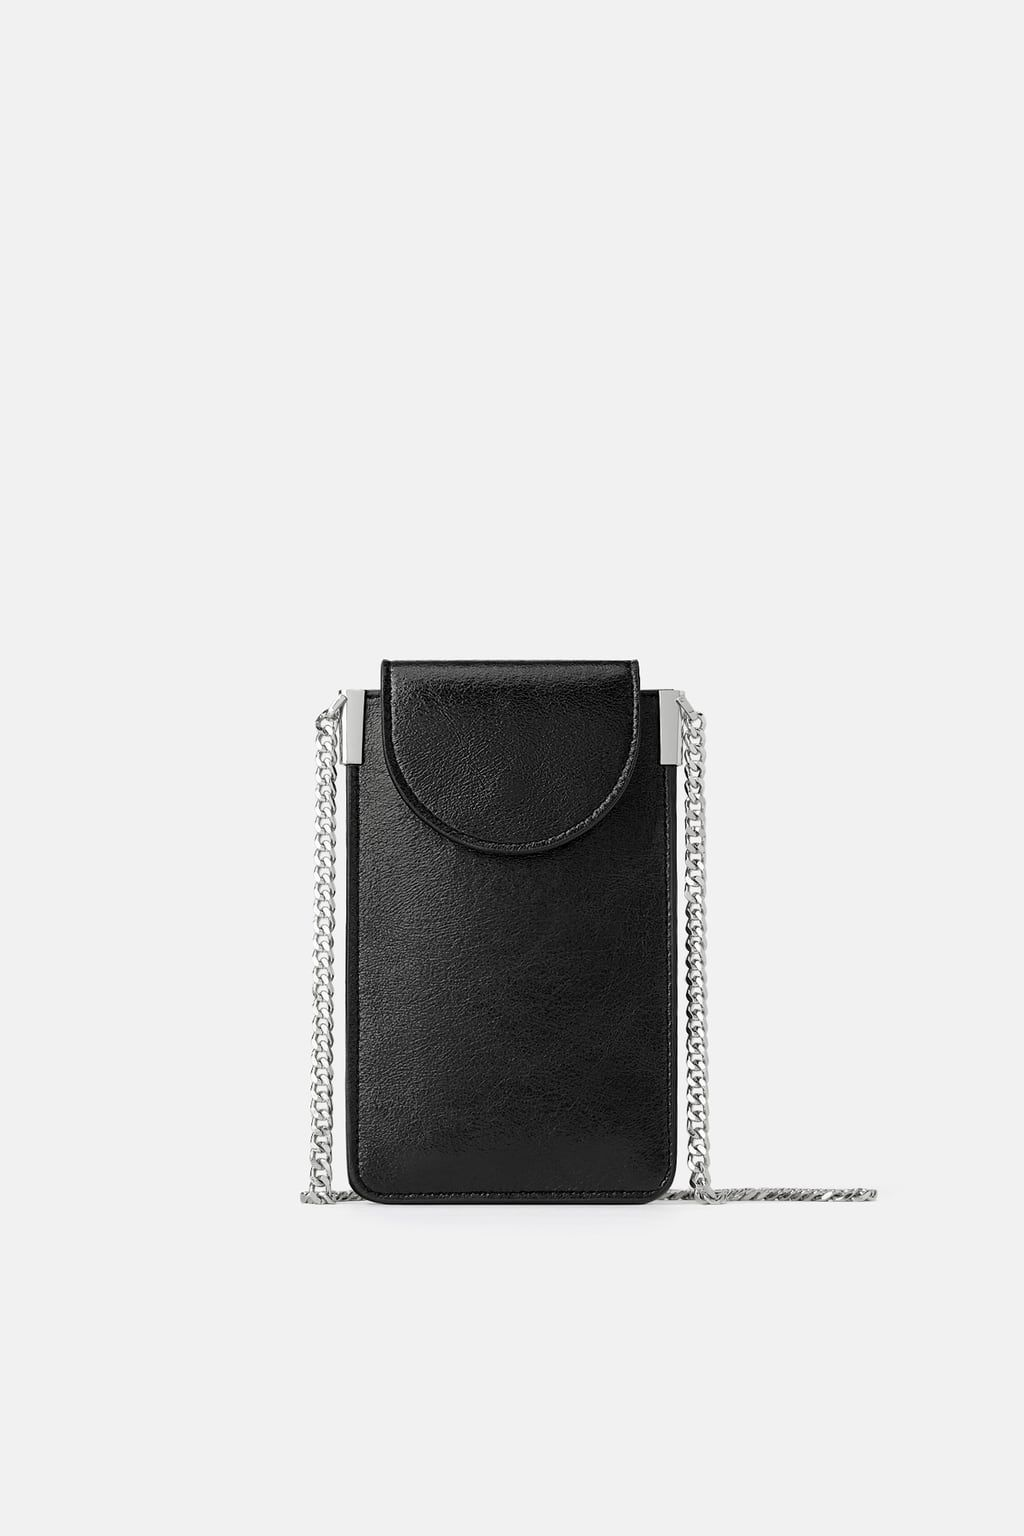 0c990b06eb Cell phone bag with chain detail in 2019 | I <3 ZARA | Phone, Phone ...